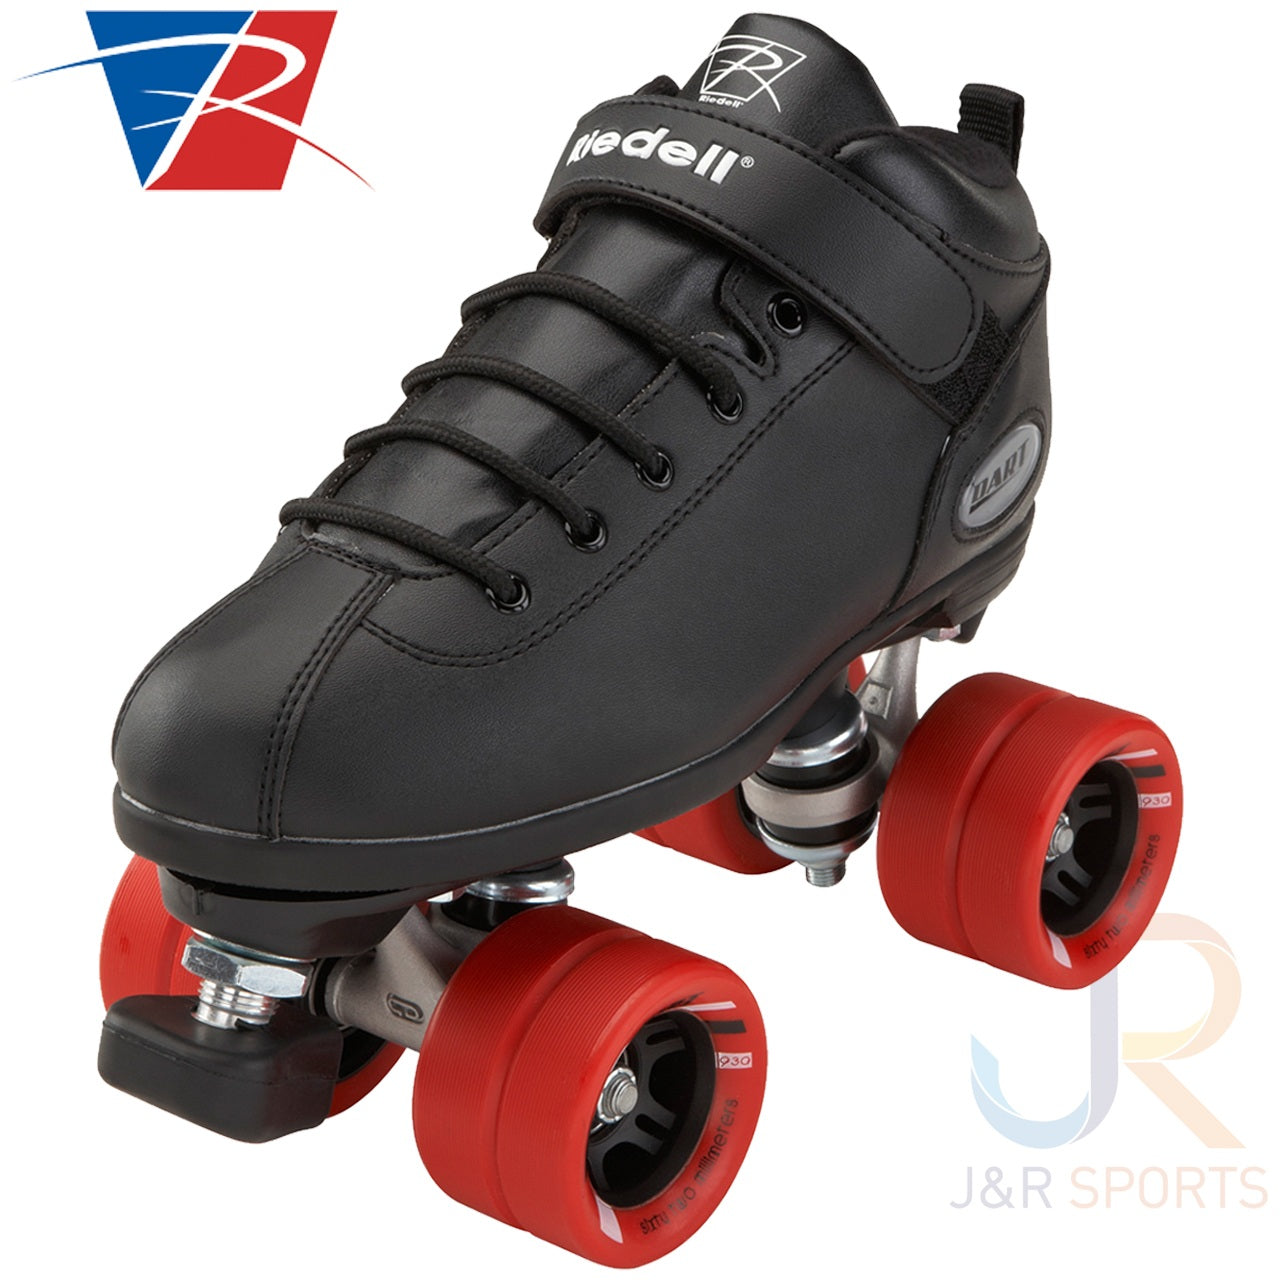 Riedell Dart Skates (various colours!)